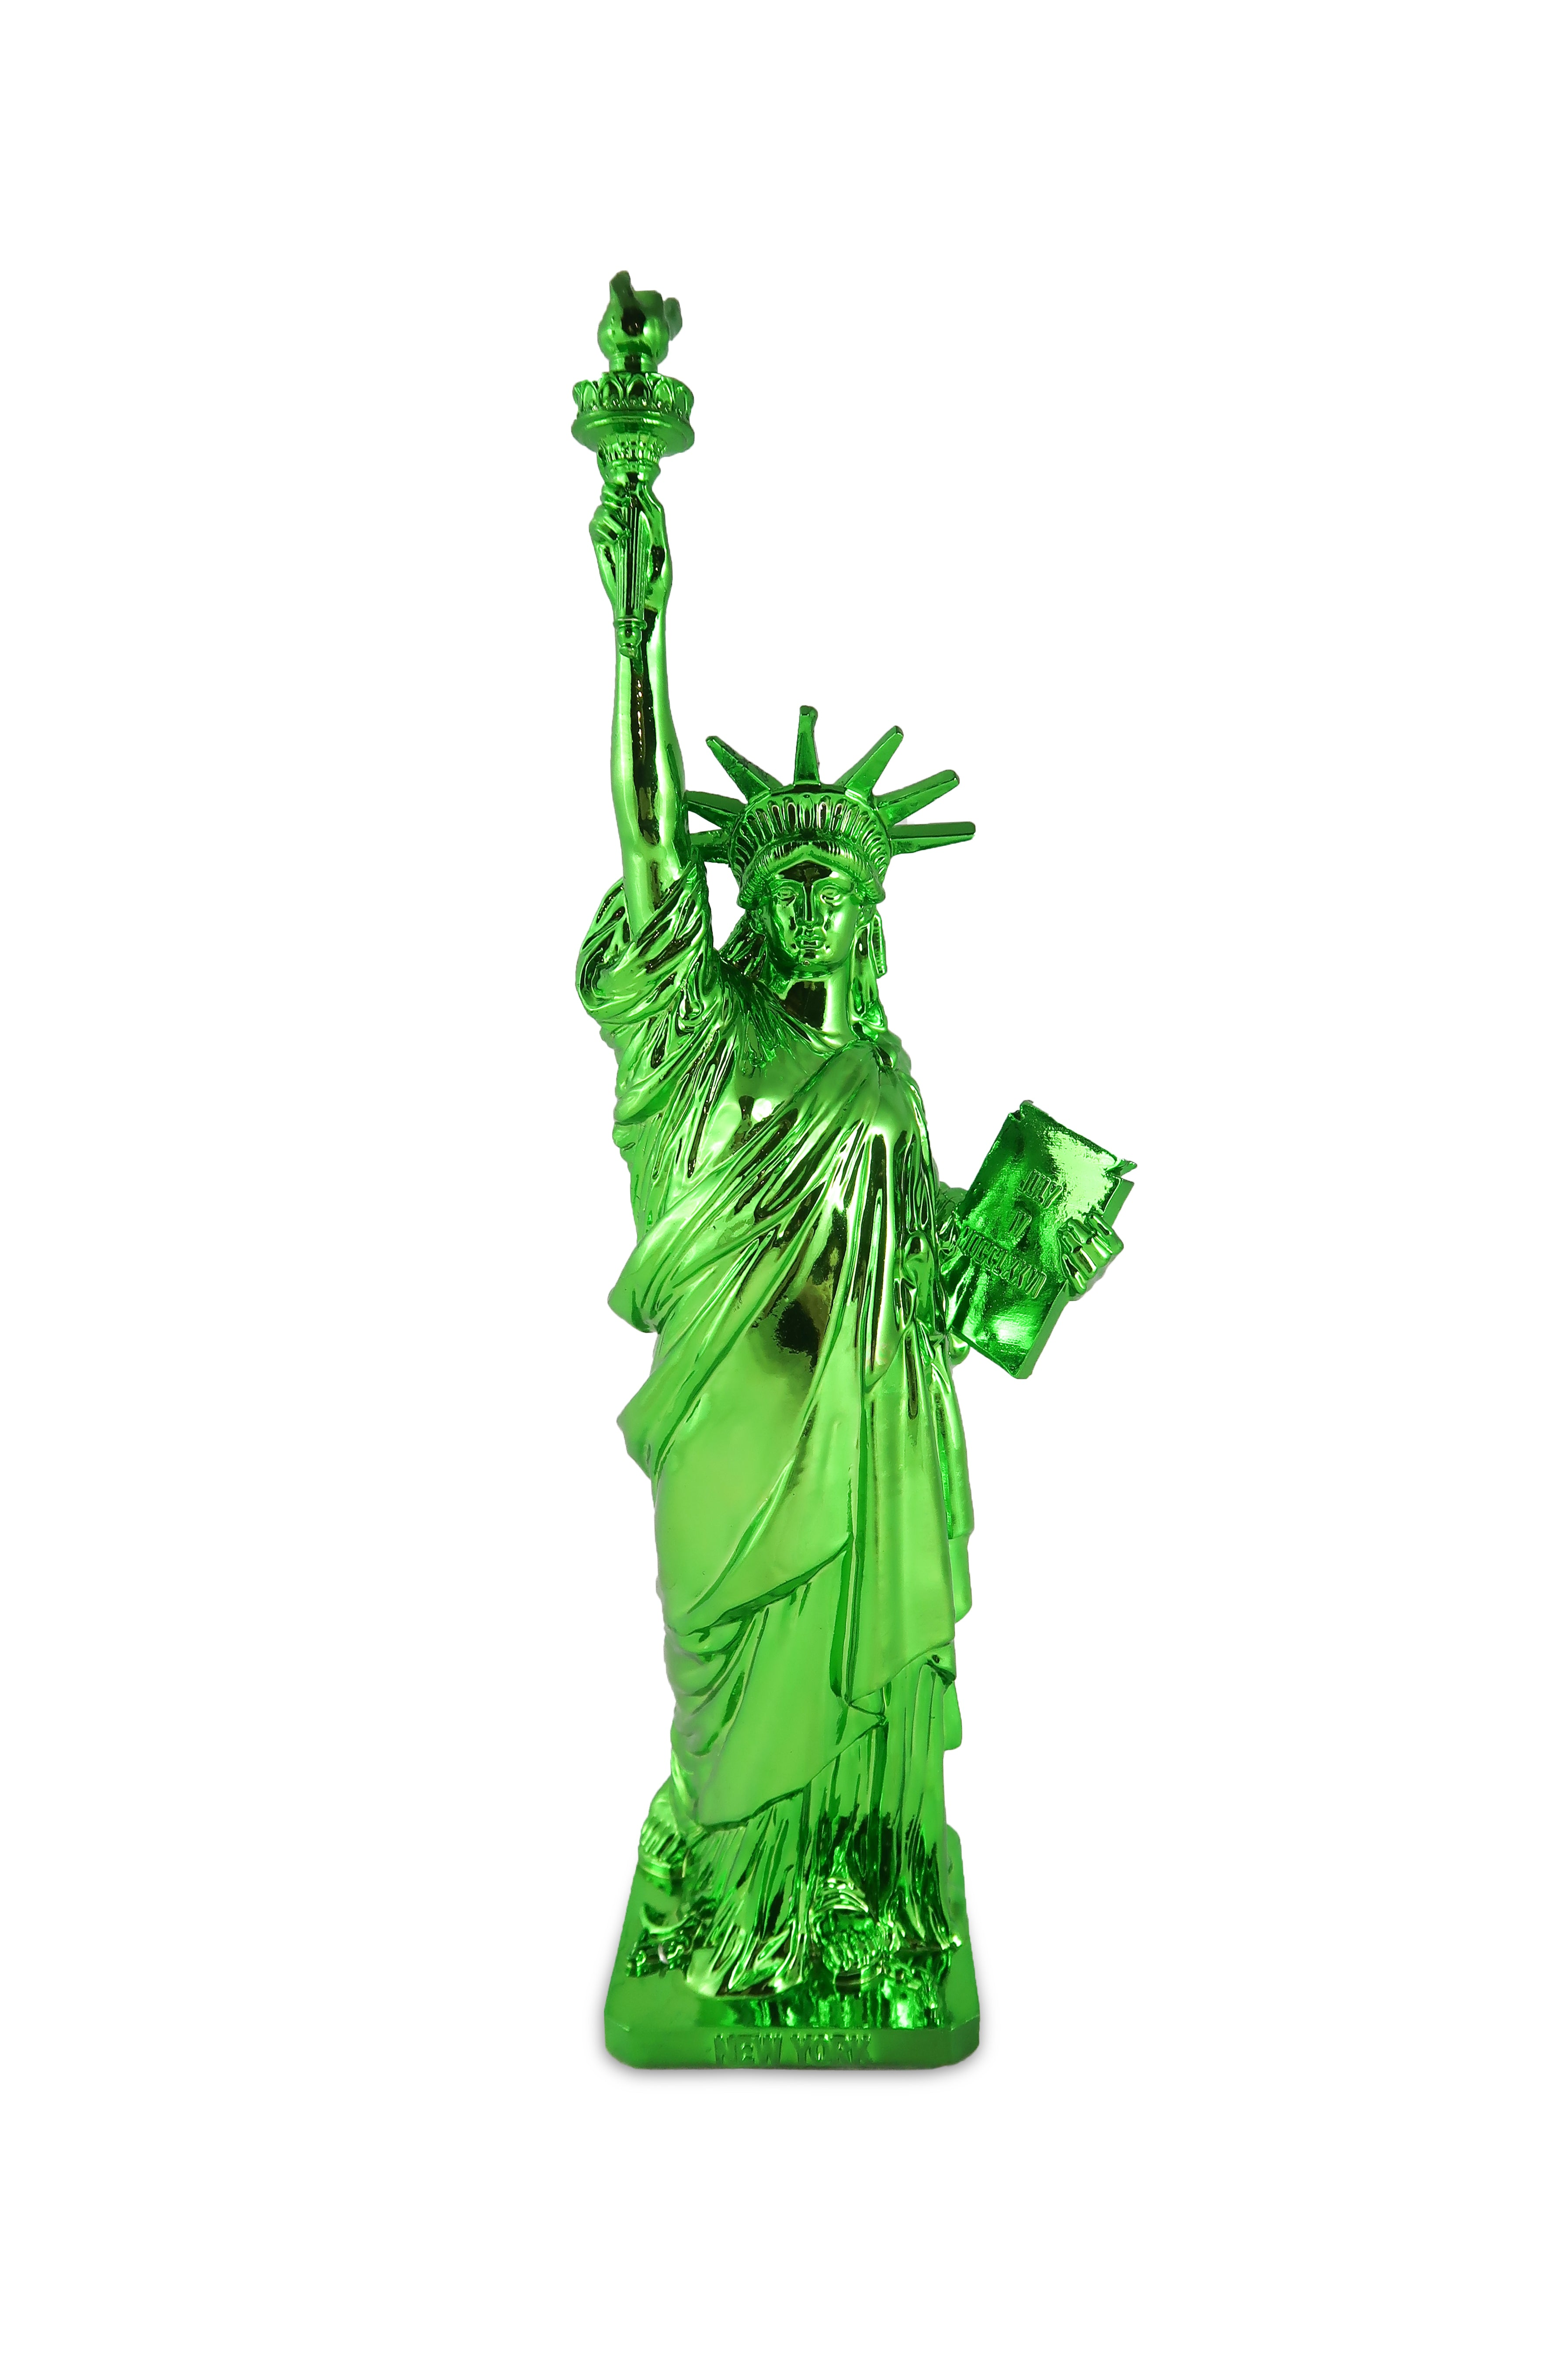 "Electroplated Green 12"" Statue of Liberty"